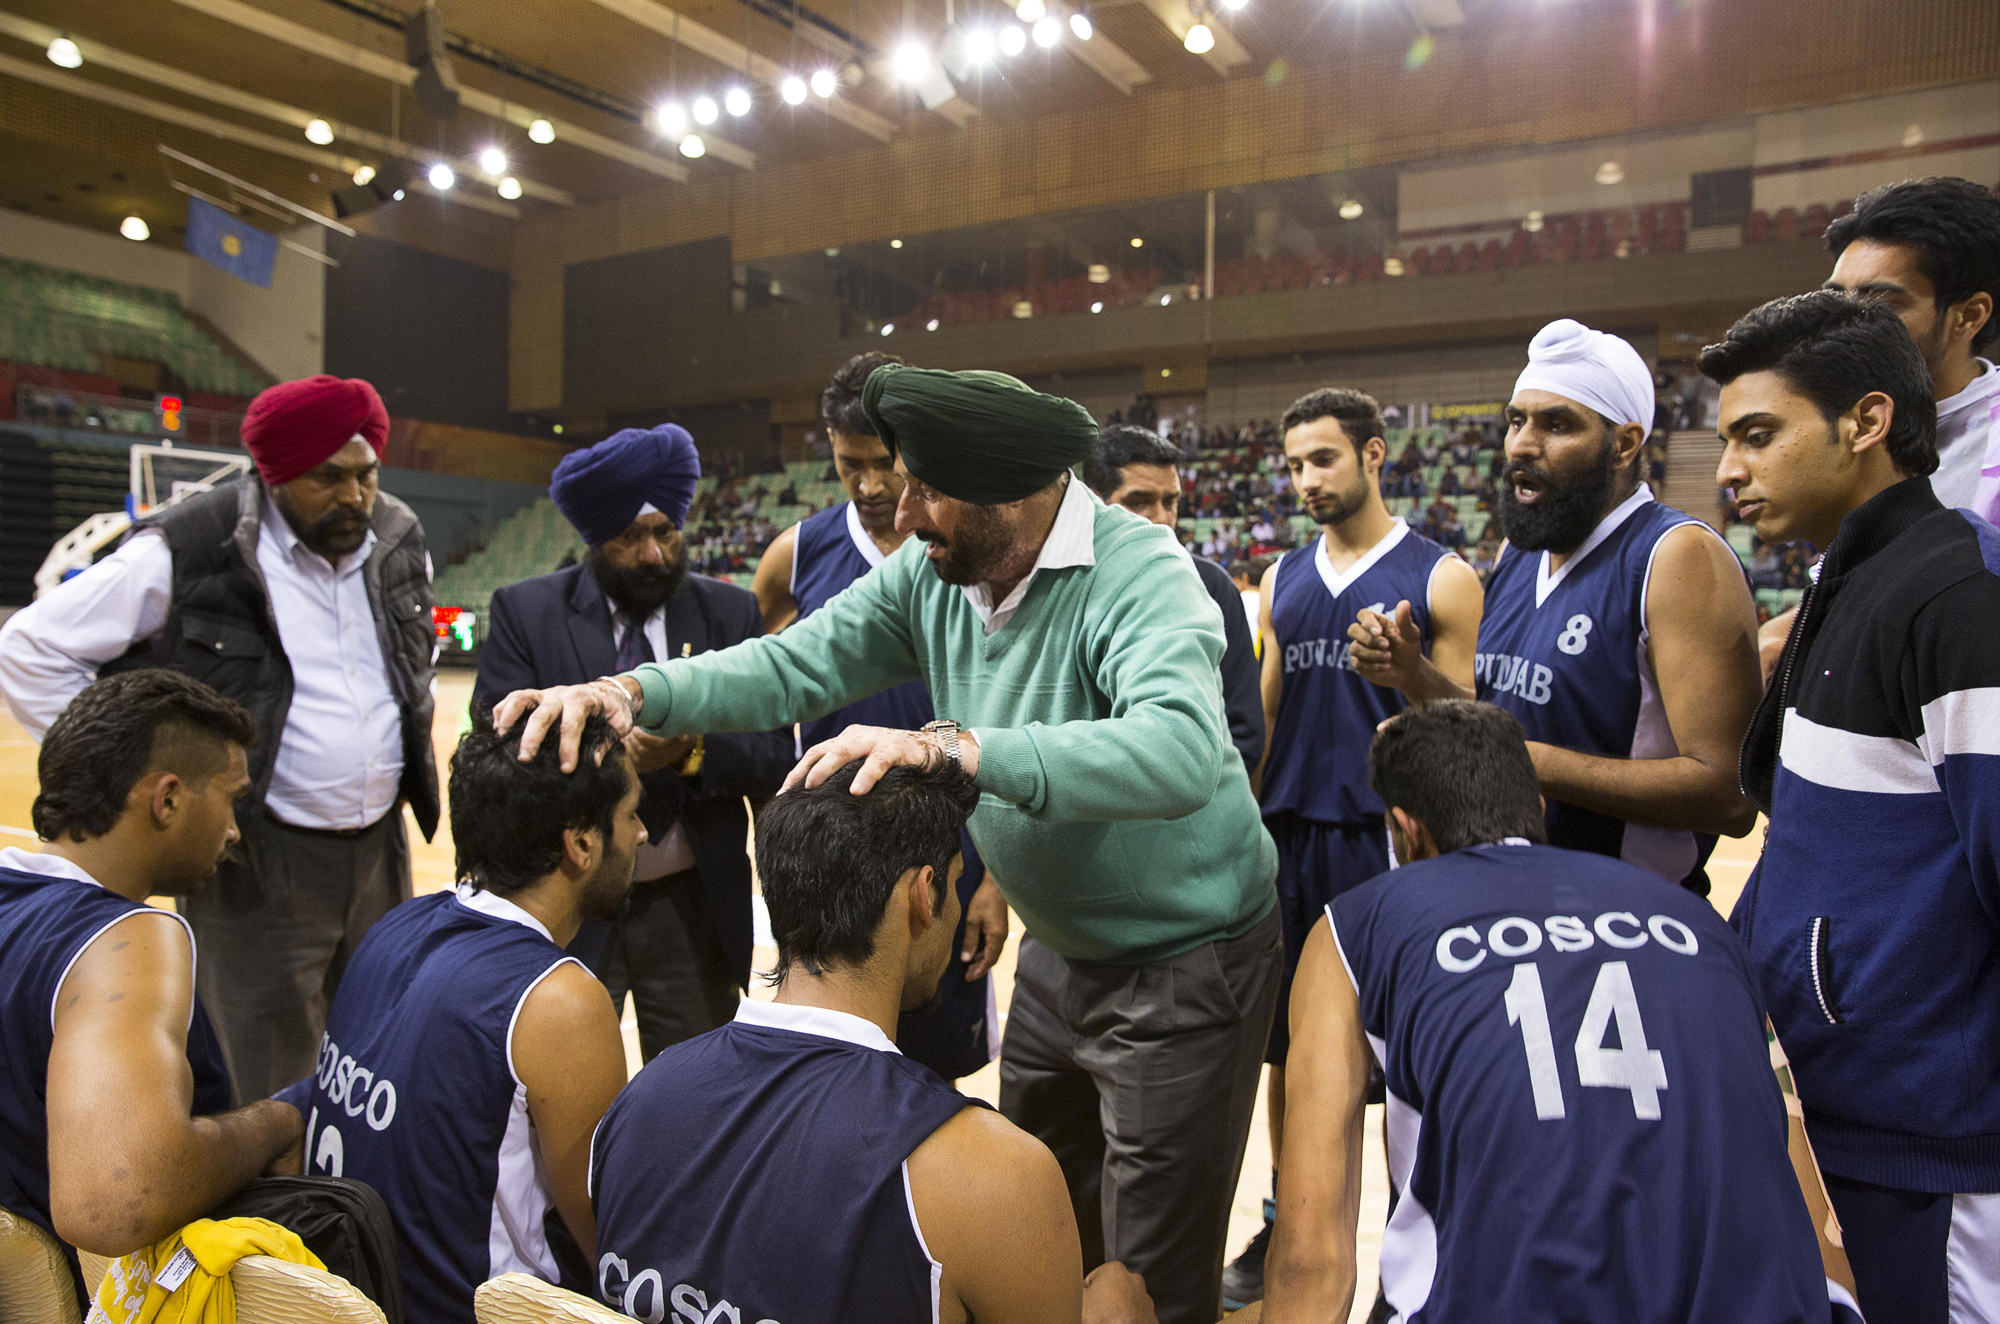 Punjab team time out during their semi-finals match against Tamil Nadu at the 64th Senior National Basketball Championship, Delhi, 2014.